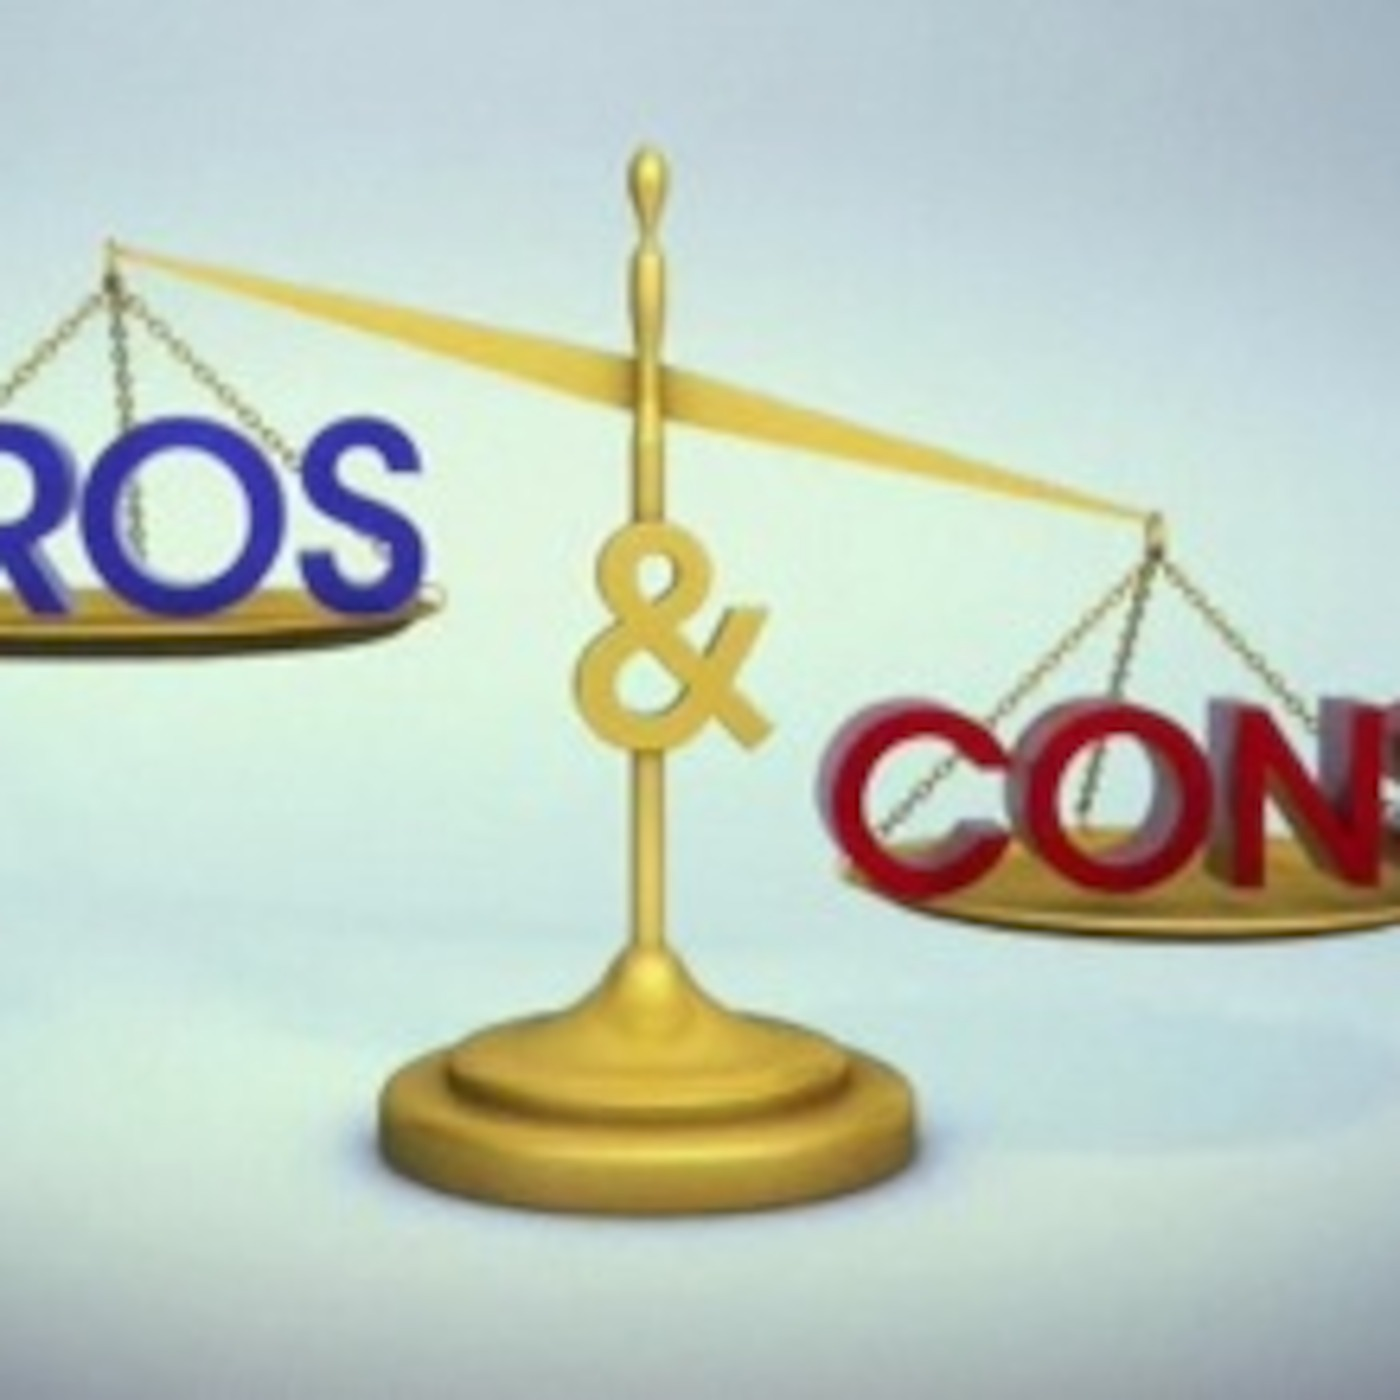 pros and cons of reality tv shows